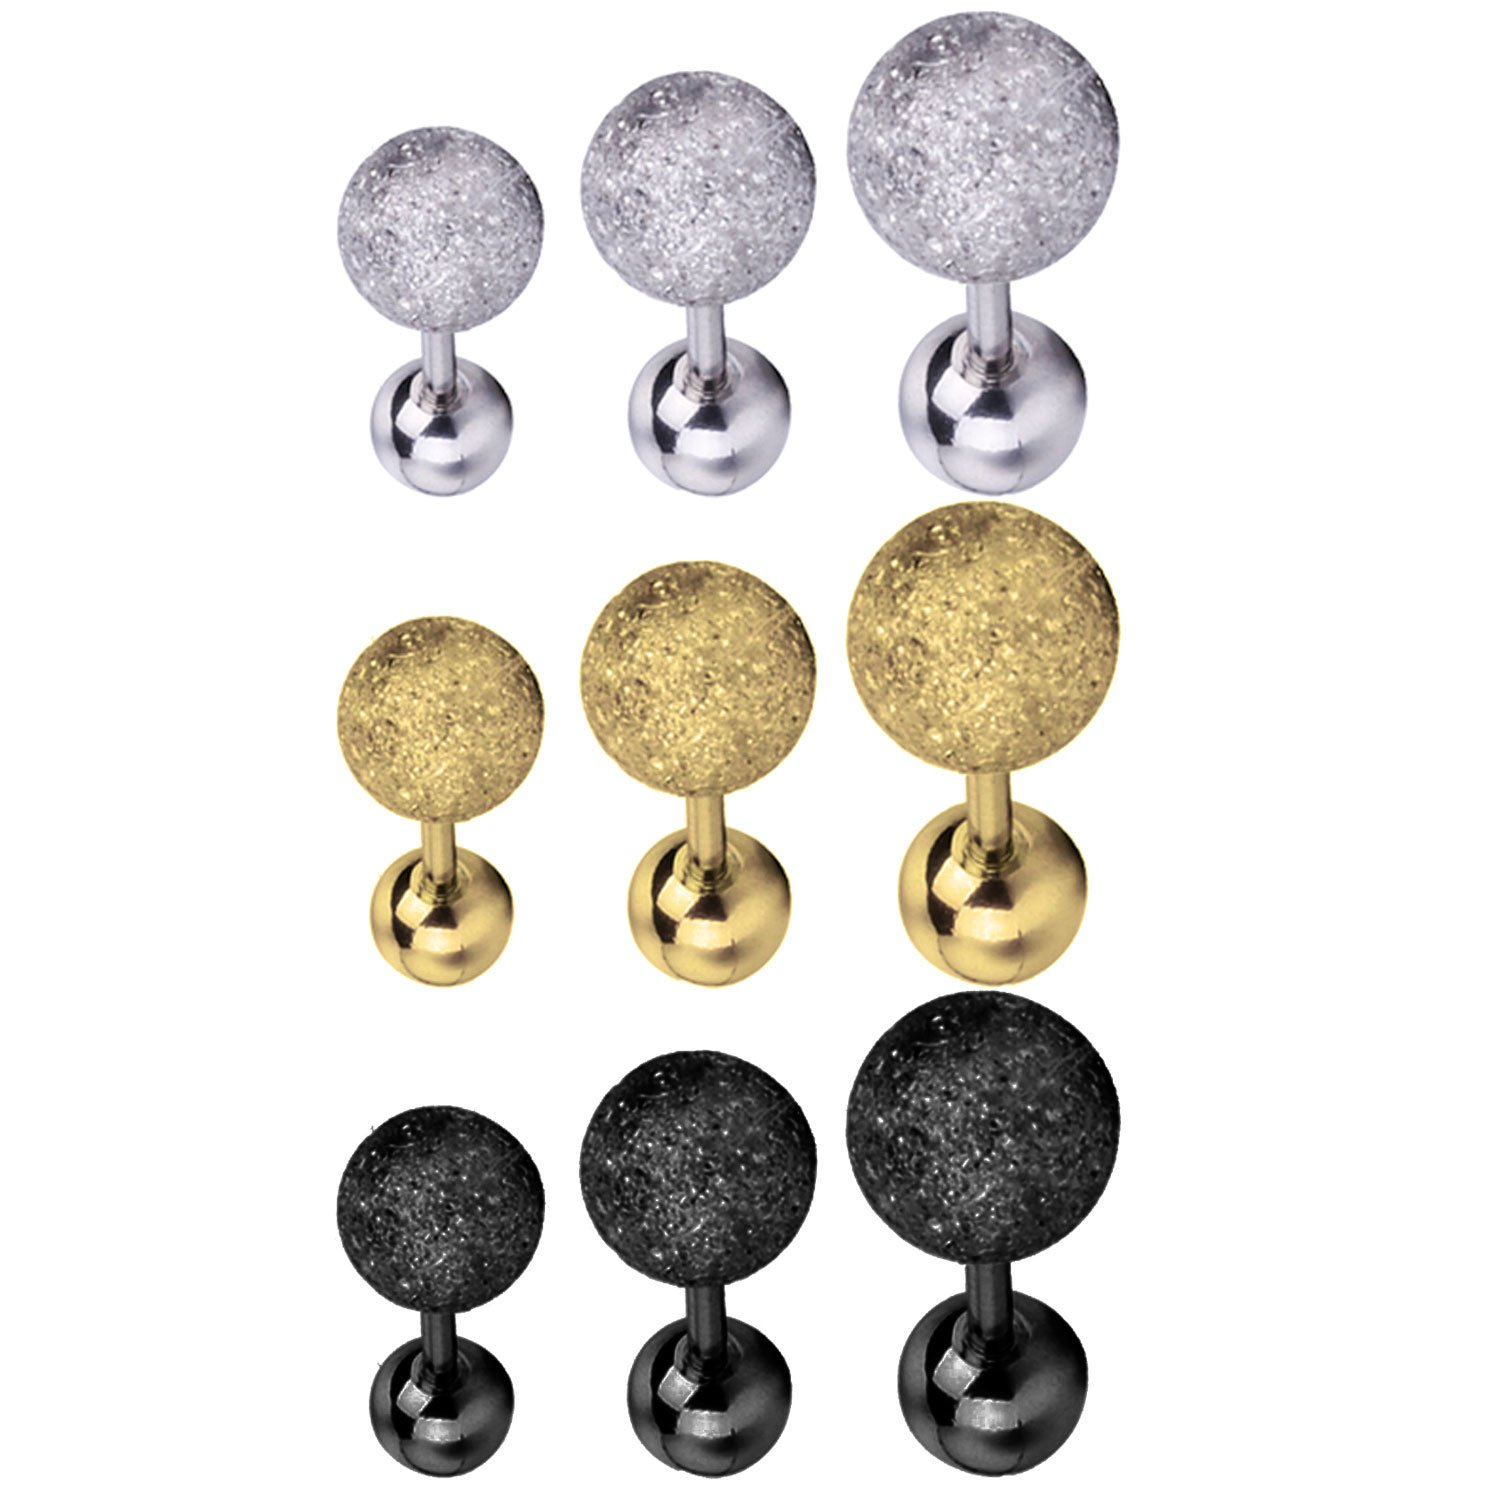 BodyJ4You 9PCS Tragus Ball Piercing Stud Earring Set 16G Surgical Steel Helix Ear Barbell Pack (1.2mm)